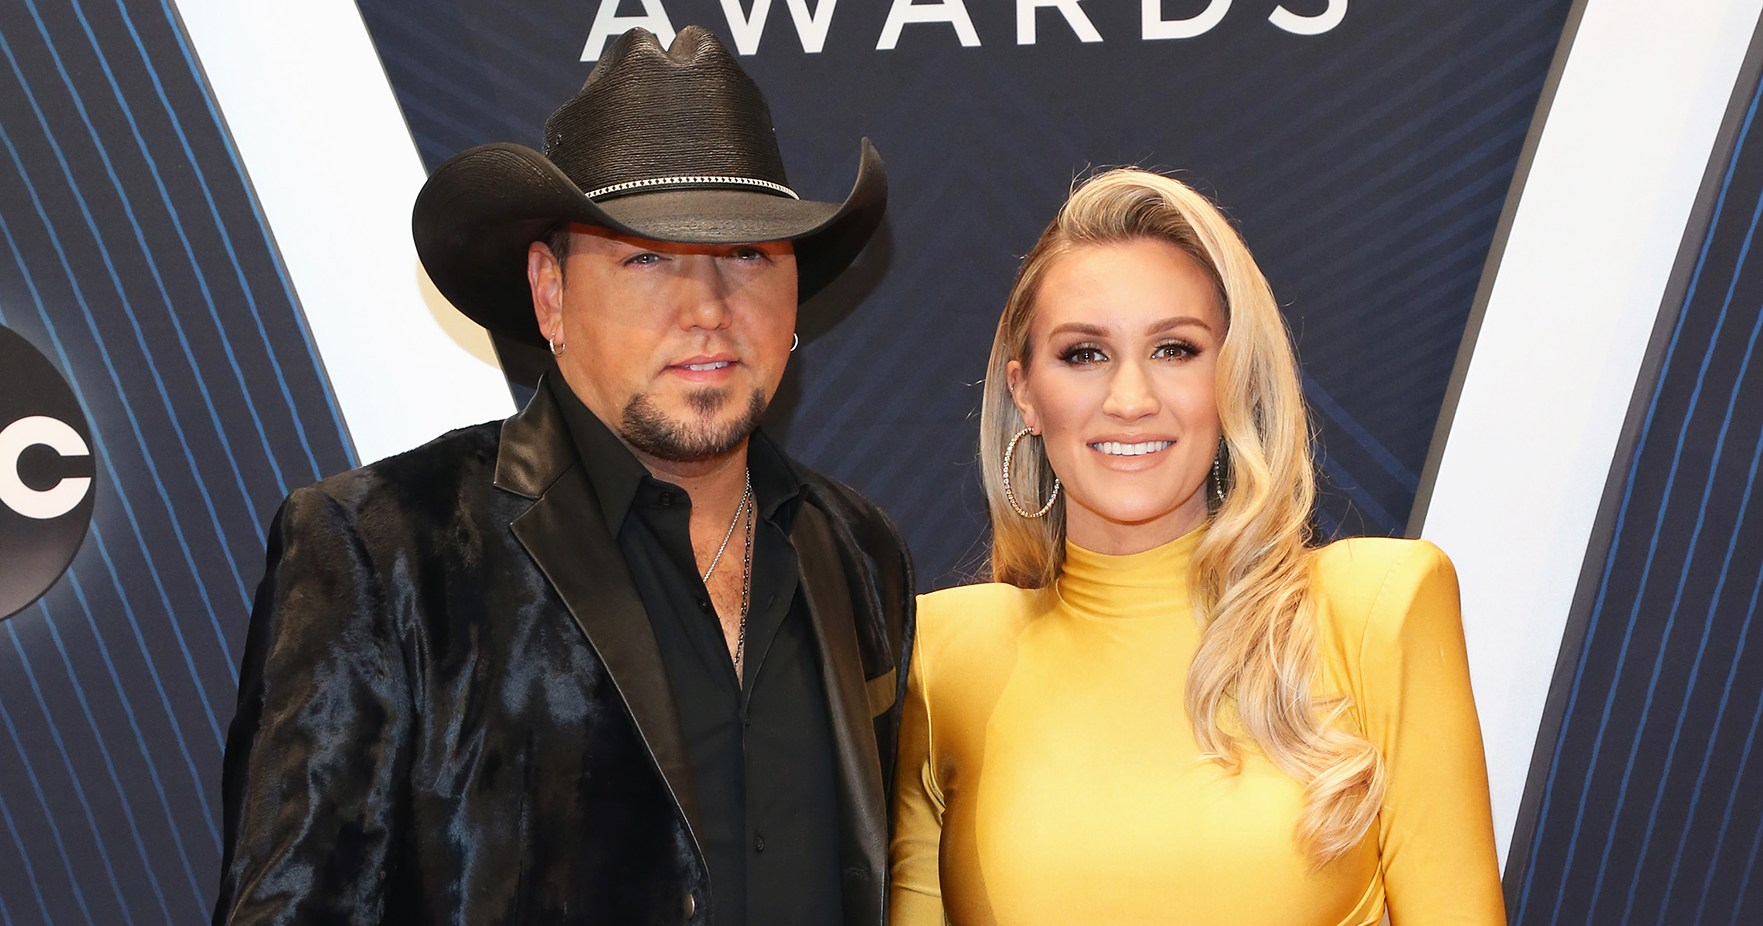 Jason Aldean's Wife Brittany Is Home From Hospital After Birth